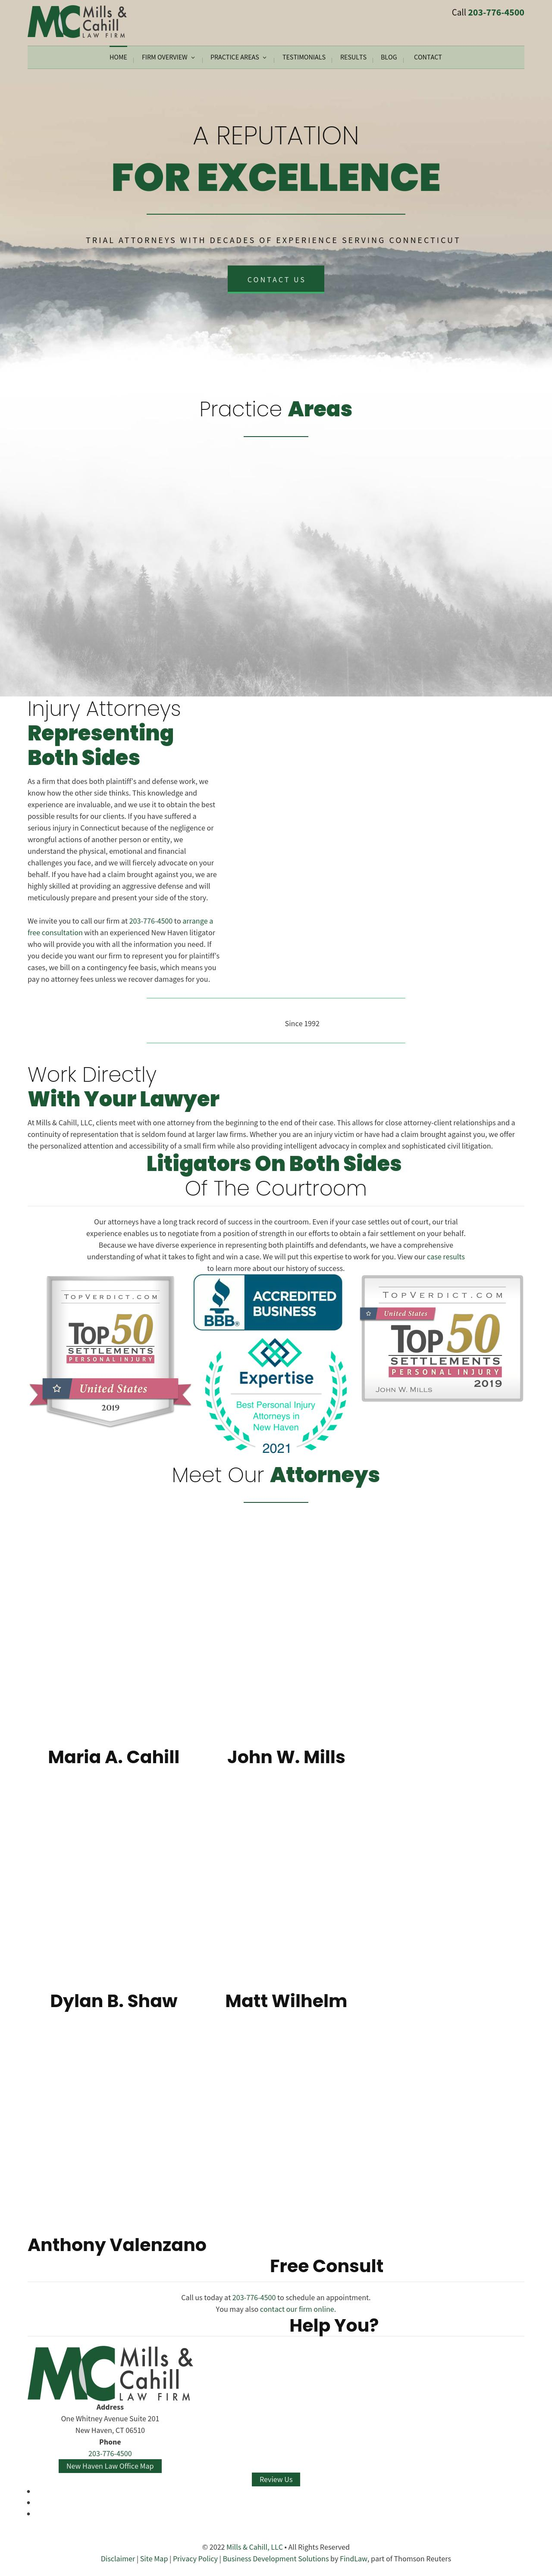 Mills Law Firm, LLC - New Haven CT Lawyers